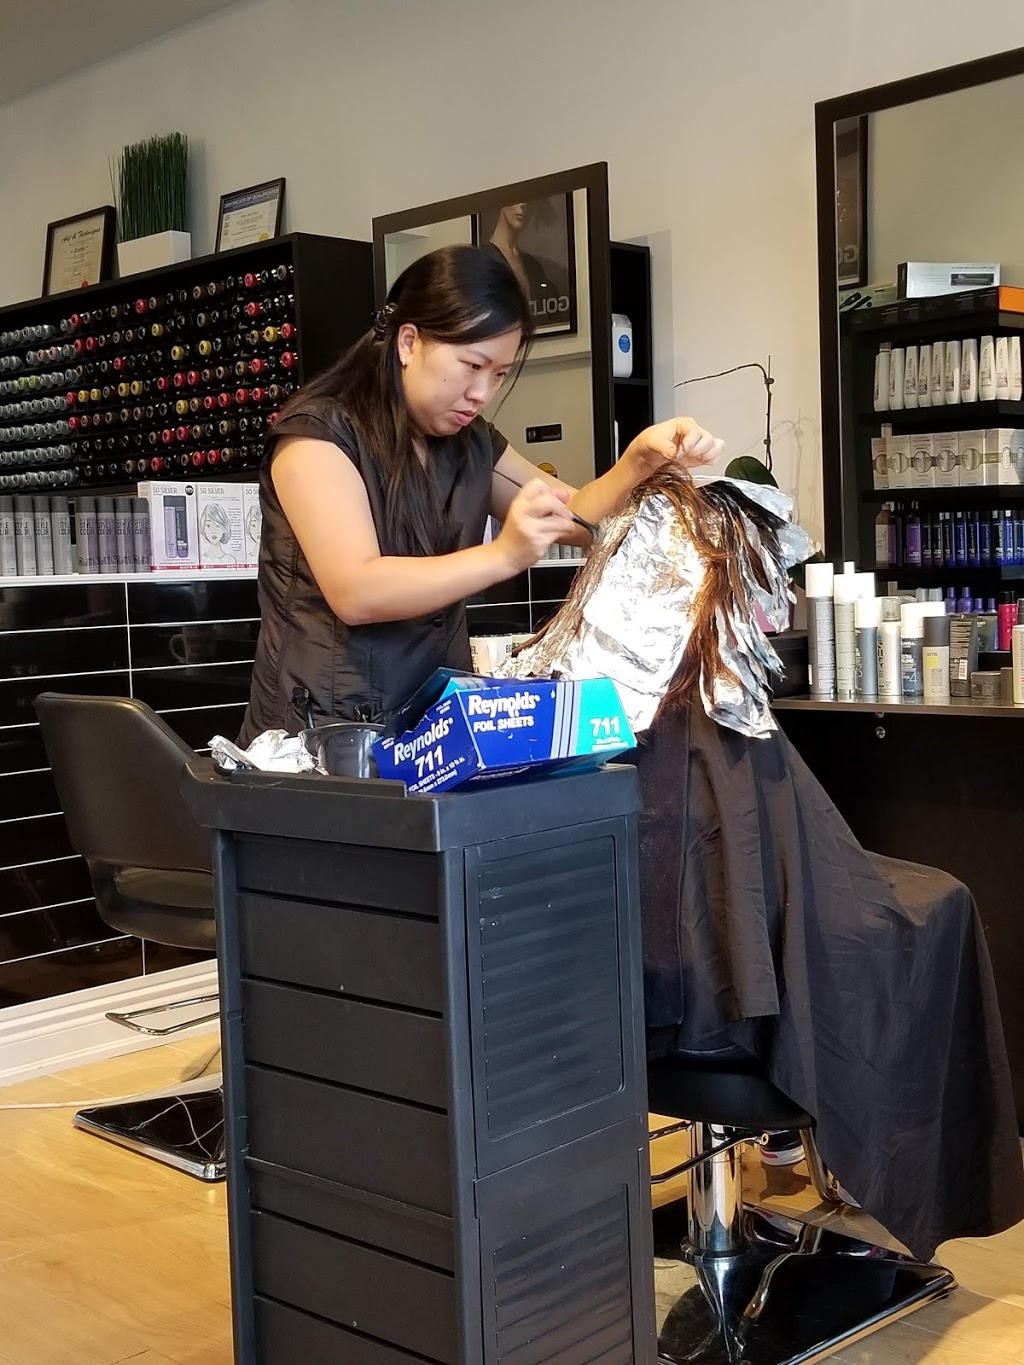 Inspire Hair and Beauty Salon | point of interest | 2-127 Inspiration Way, Brampton, ON L6R 3W4, Canada | 9052160653 OR +1 905-216-0653